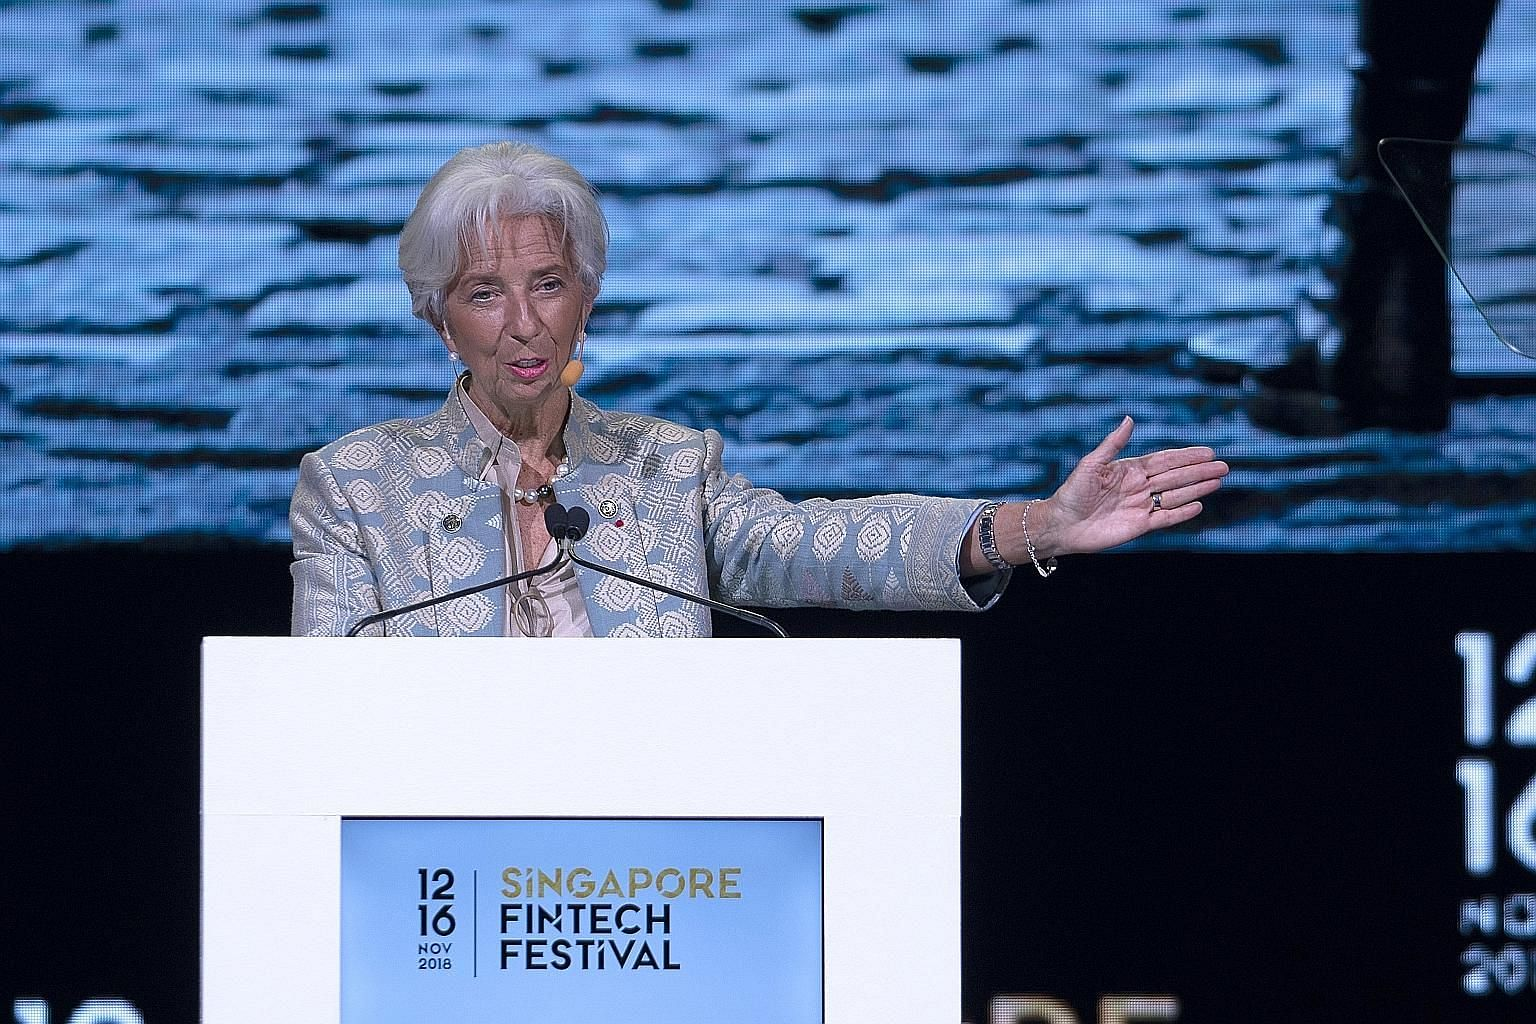 IMF managing director Christine Lagarde, speaking at the Singapore Fintech Festival yesterday, said central banks do not have to design digital currencies on their own, but can work with private firms to come up with solutions that allow financial in